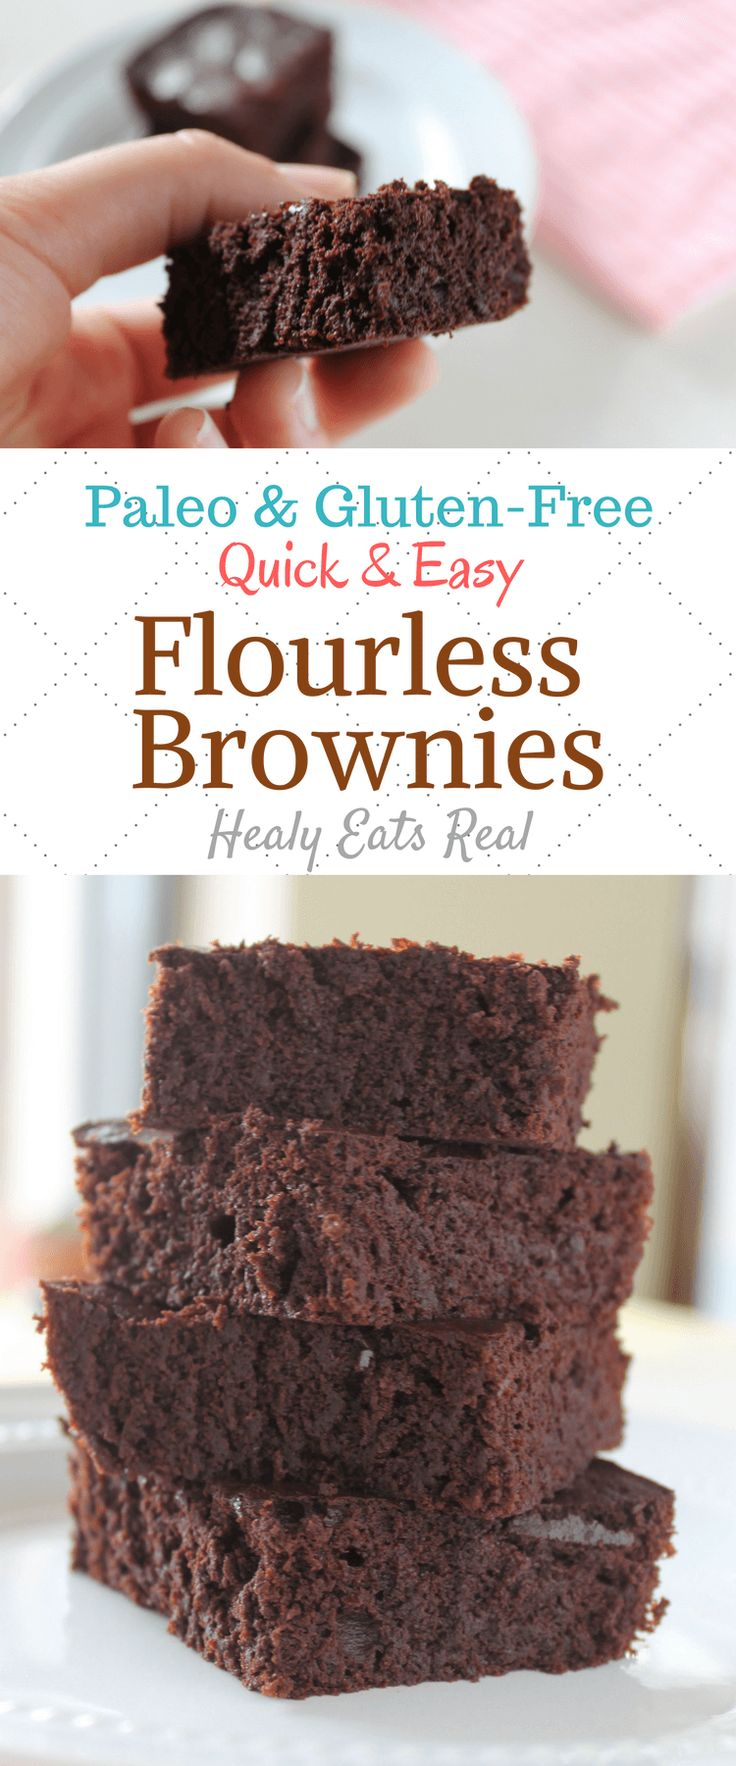 Flourless Brownies (Paleo, Gluten Free, Dairy Free) These healthy delicious chocolate brownies can be made in under 30 minutes! So easy!  @100daystowellness